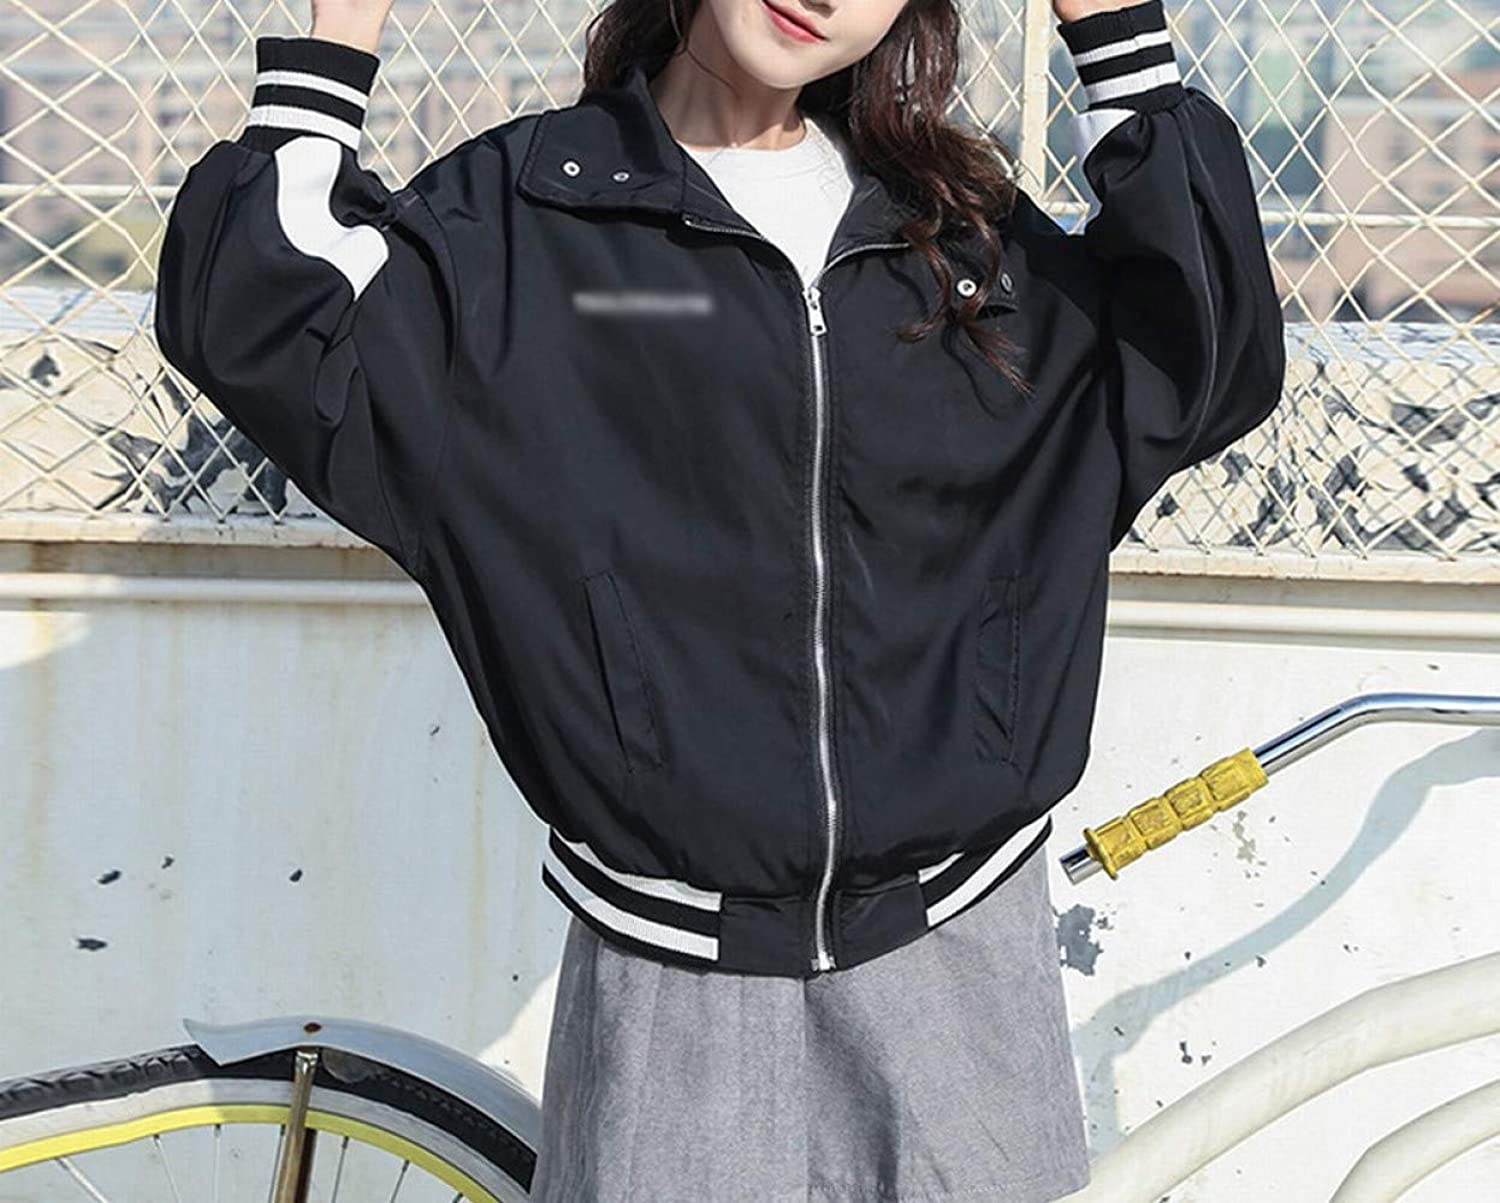 Spring and Autumn Jacket Women's Fashion Letter Jacket Baseball Wear Student Loose BF Top,Black,S DEED